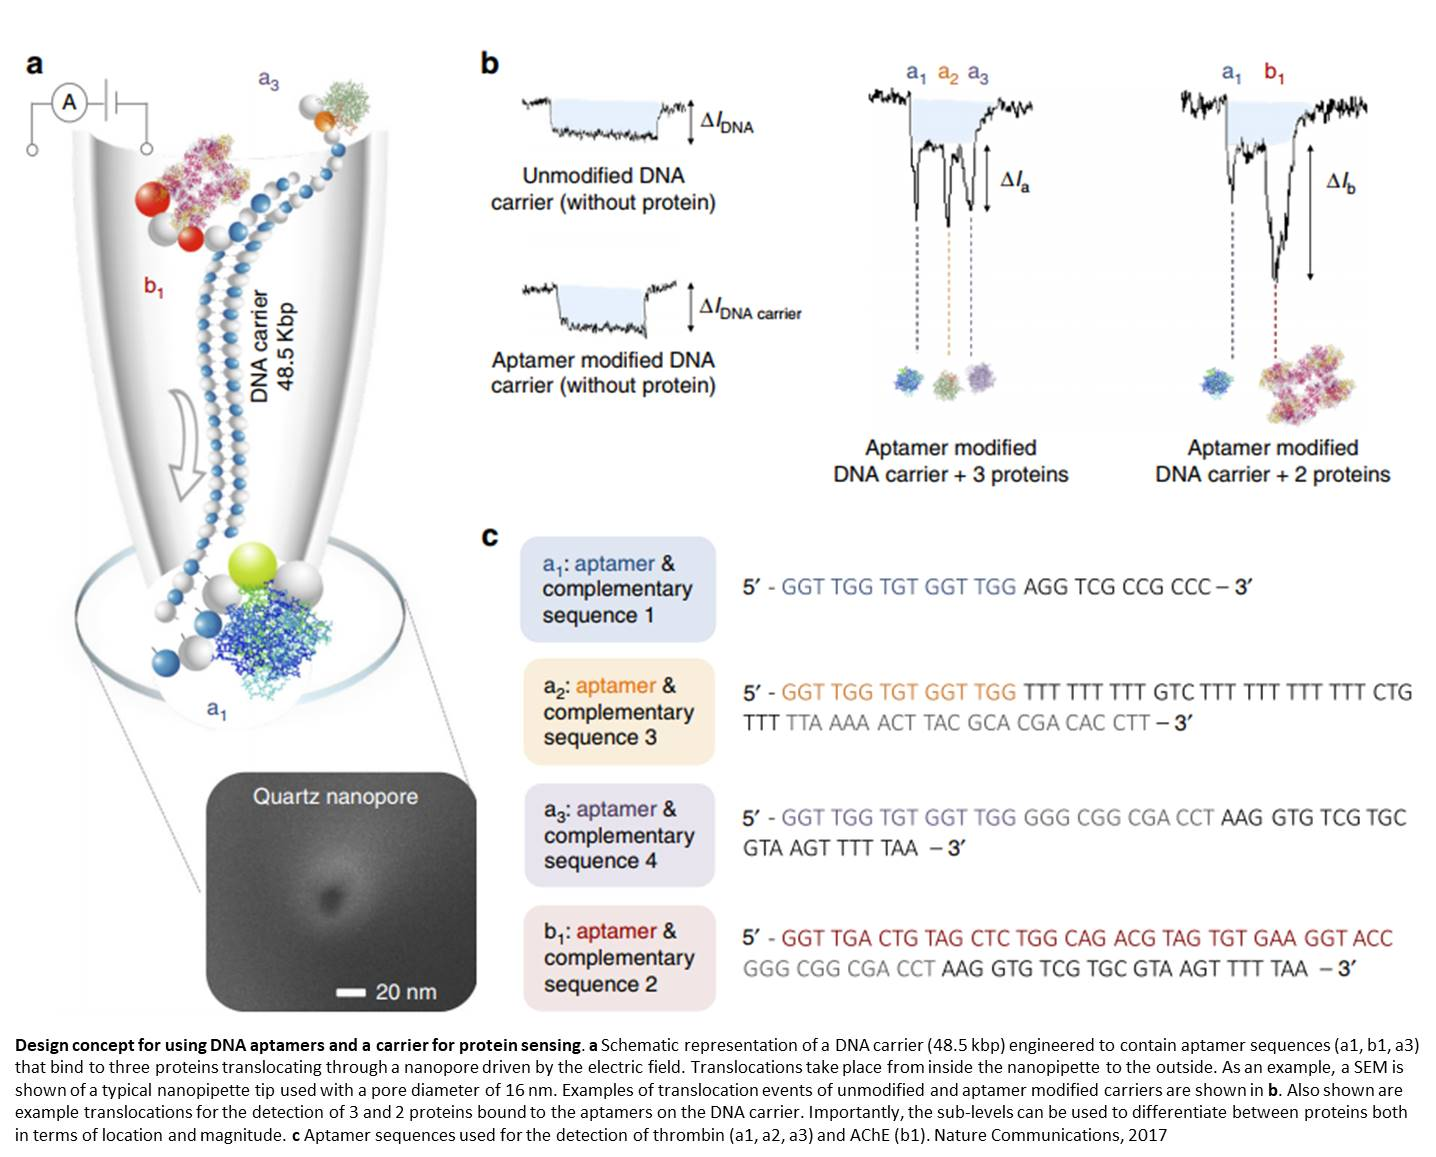 Nanopore detection system to screen biomarkers in serum using DNA aptamers